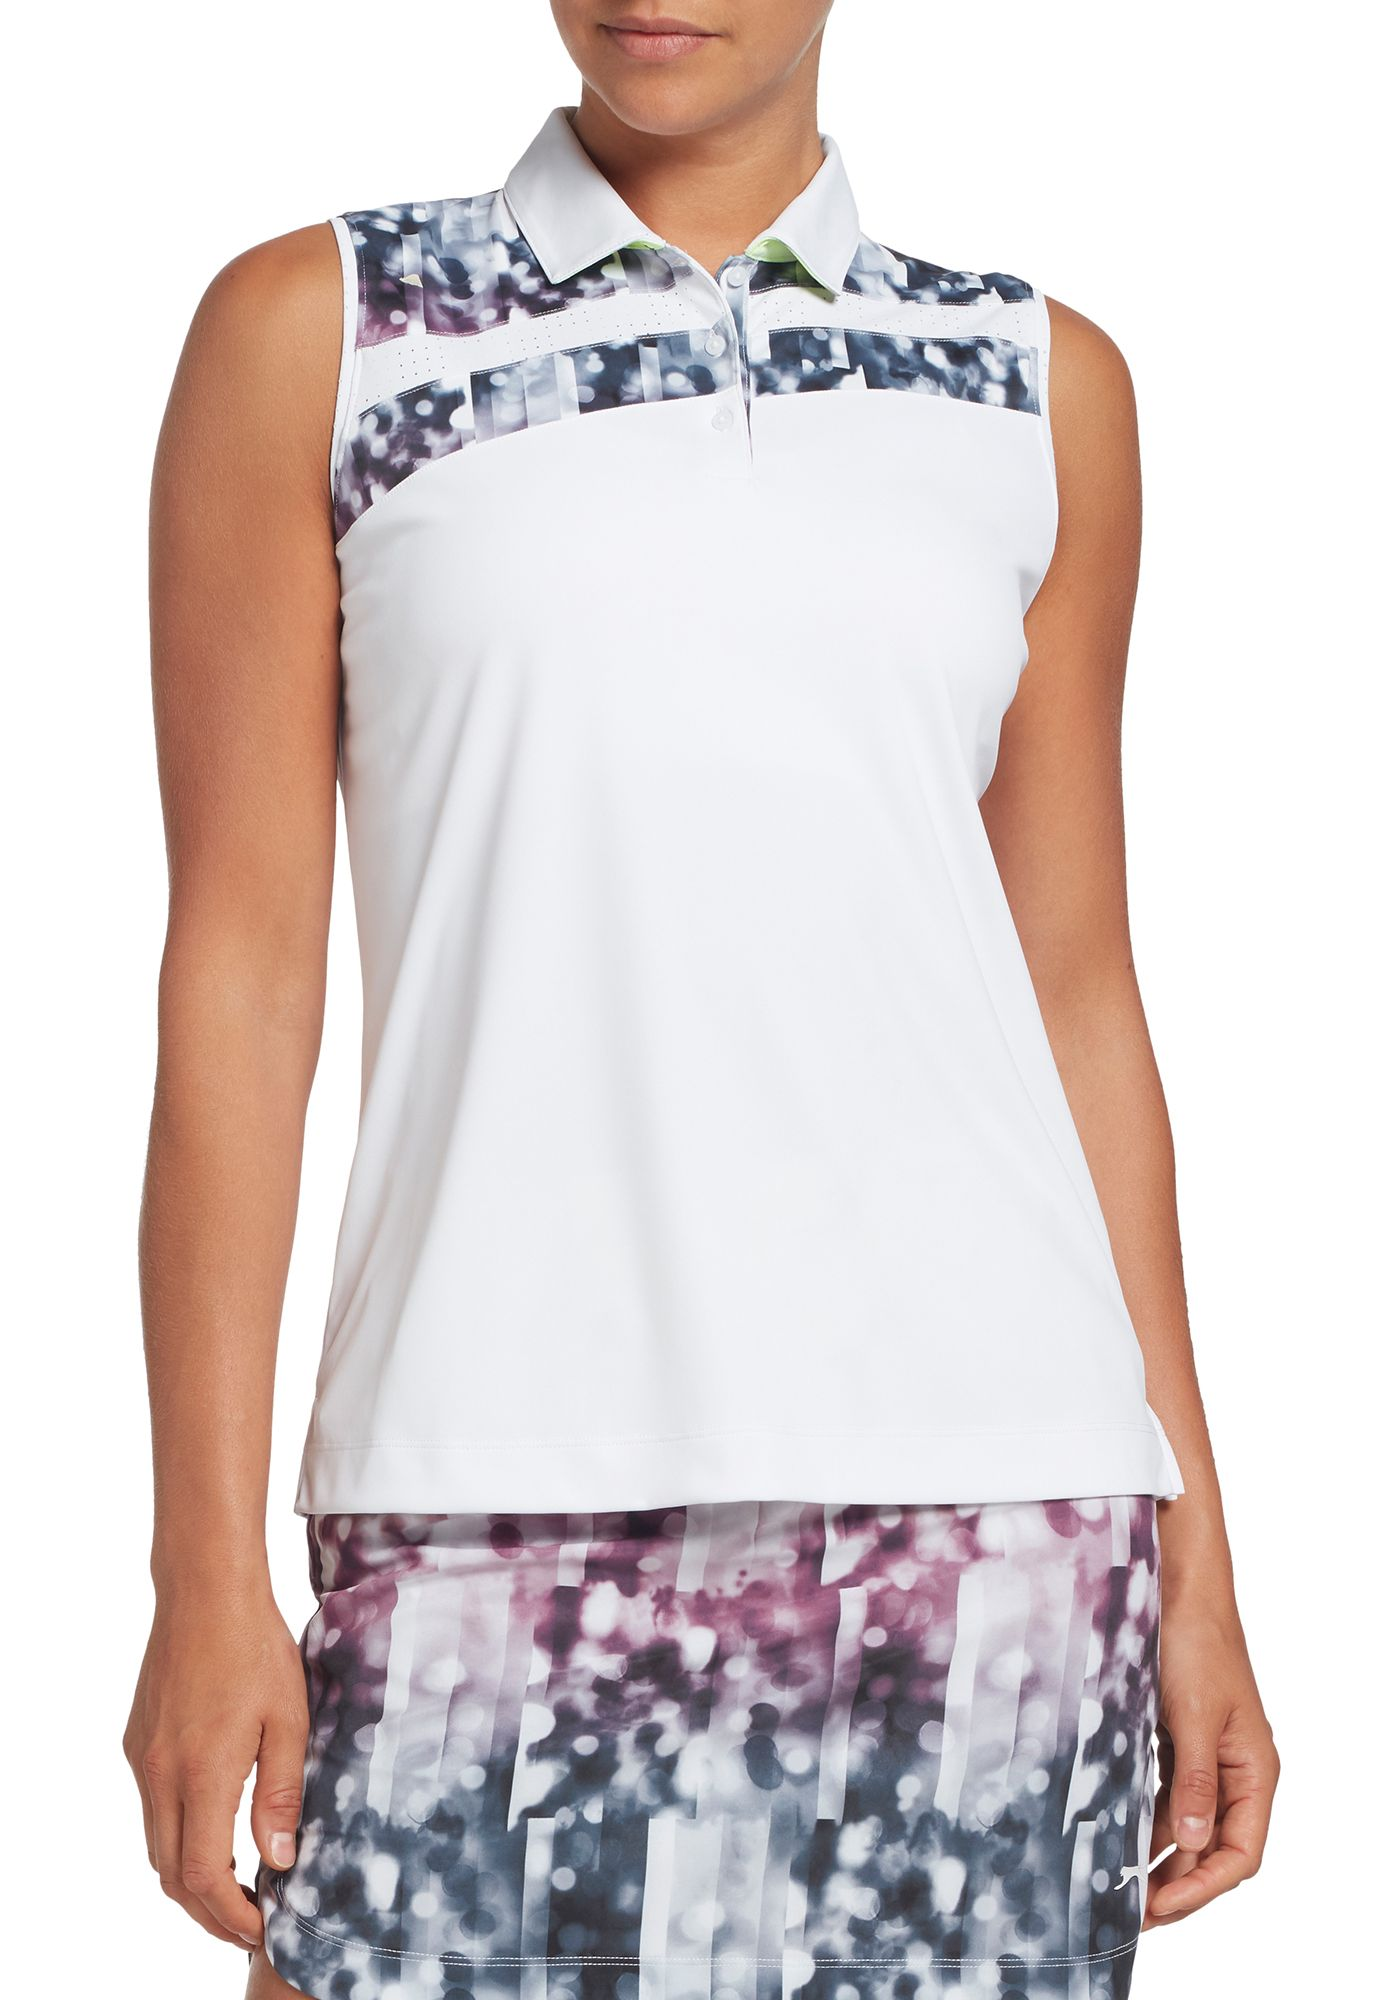 Slazenger Women's Asymmetrical Printed Sleeveless Golf Polo